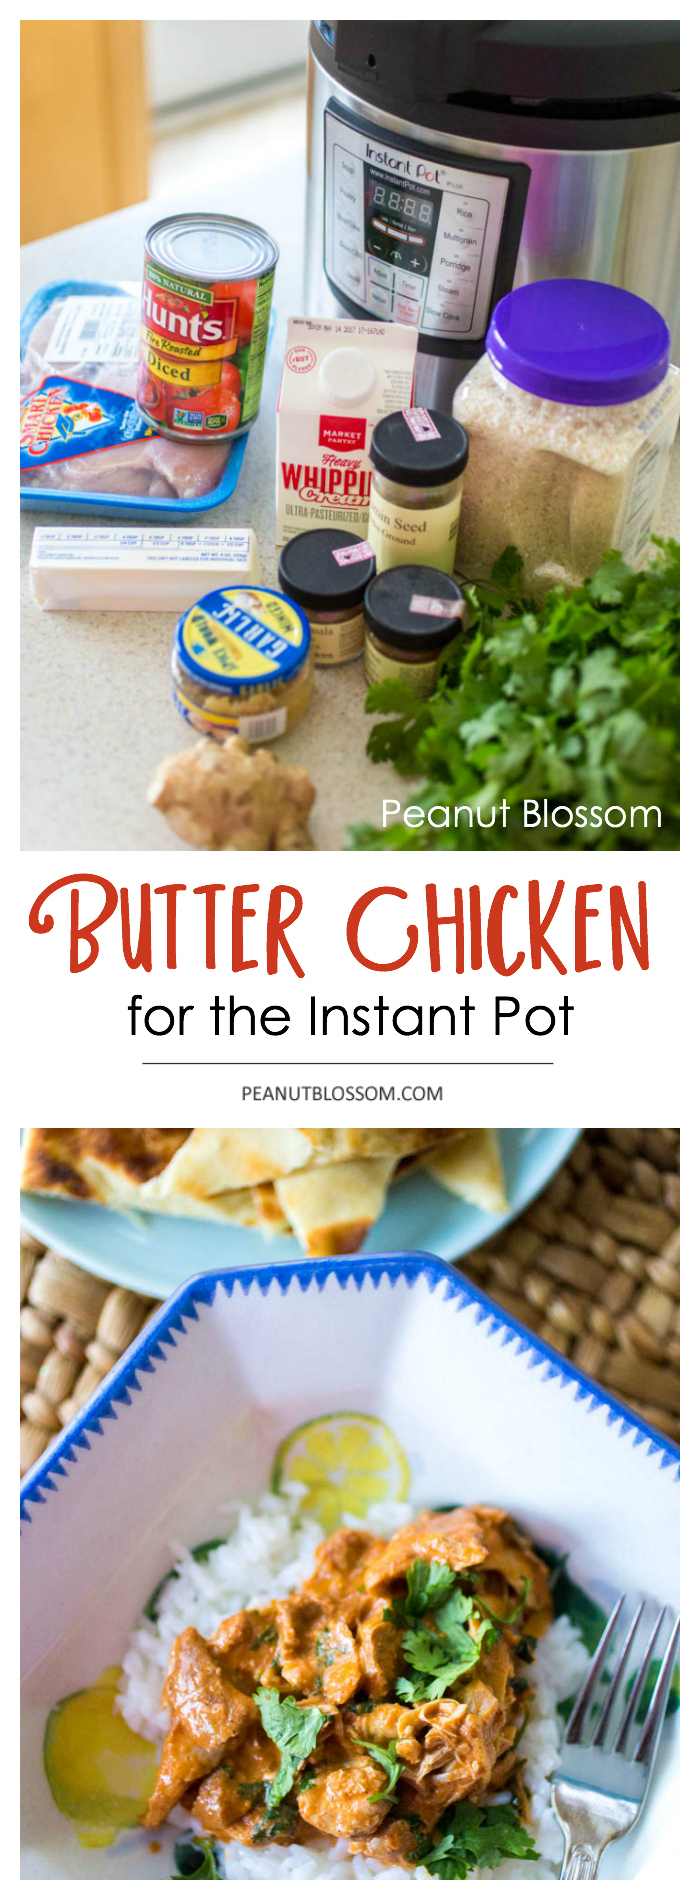 Instant Pot Butter Chicken recipe: Great introduction to Indian food for kids.